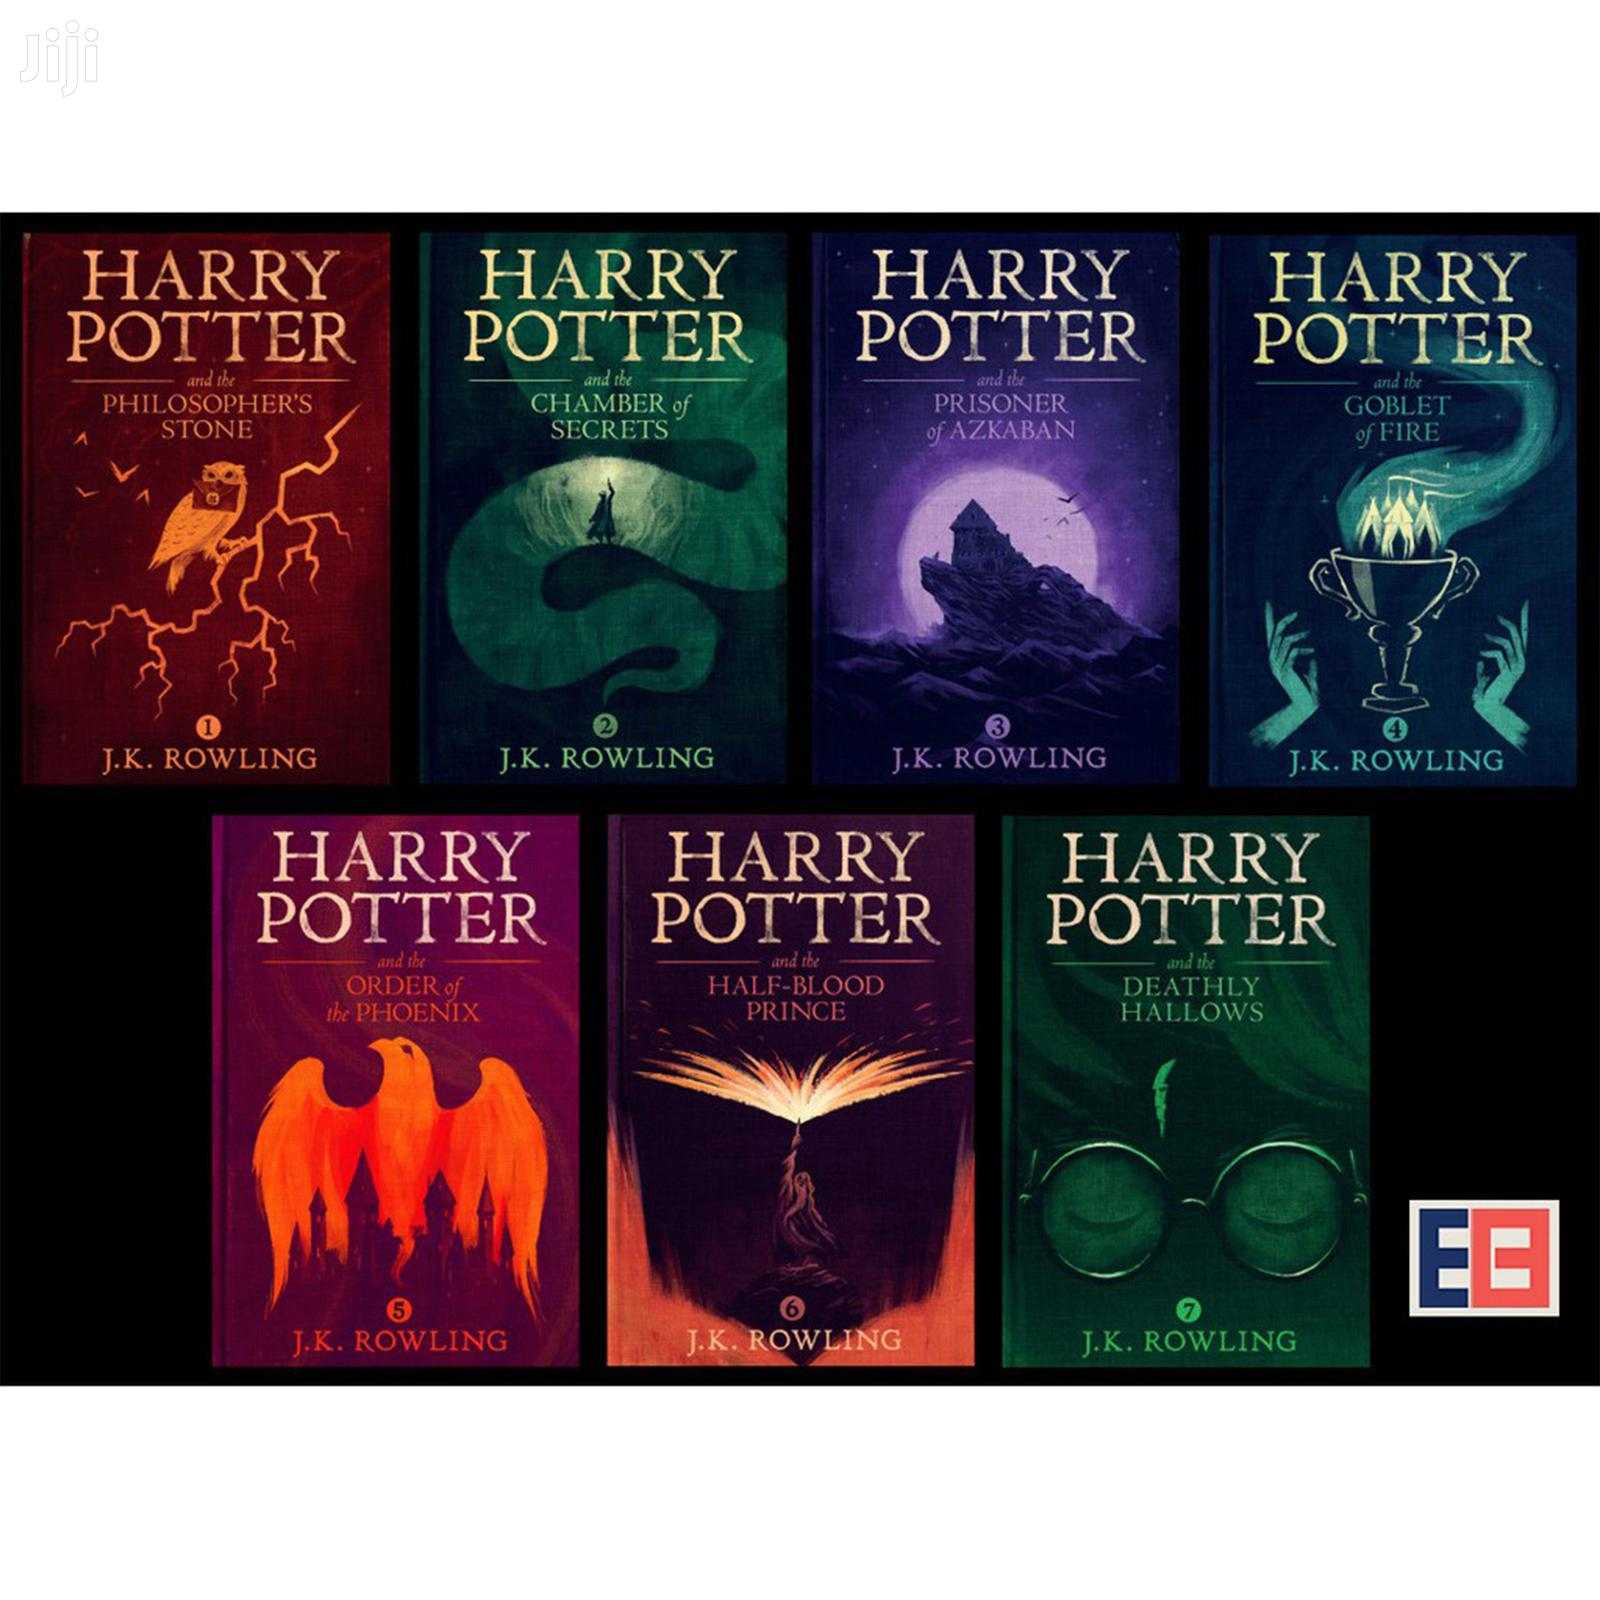 Harry Potter Complete Collection (E-Book and Audio-Books) | Books & Games for sale in East Legon, Greater Accra, Ghana